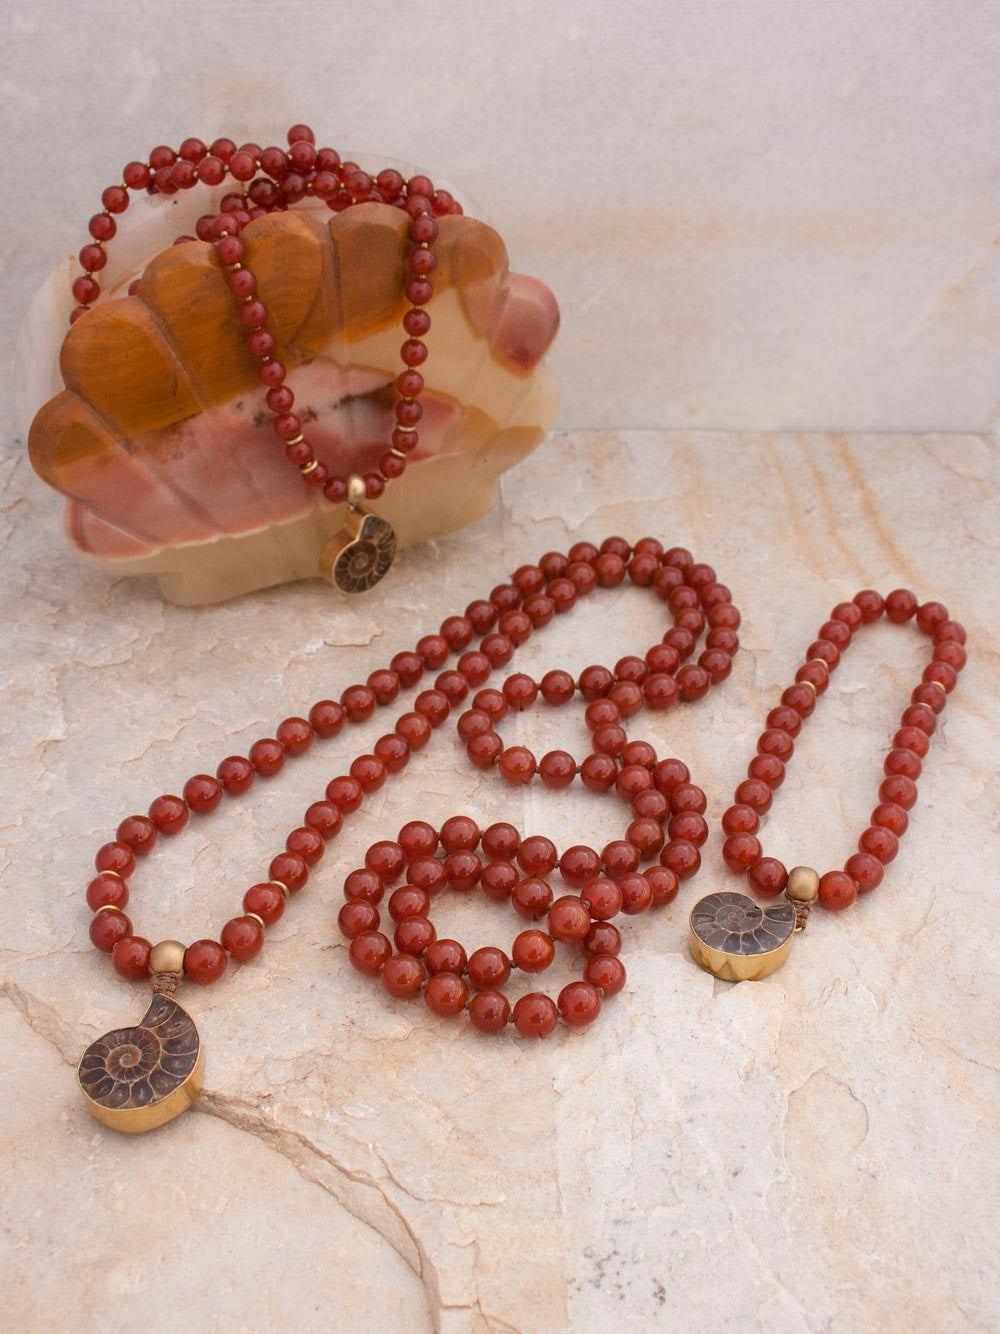 To Infinity... a 108 bead Mala in spectacular sienna onyx, 10mm, with brass Guru bead and ammonite nautilus pendant: view of 108 bead, 81 bead, and 27 bead Malas.